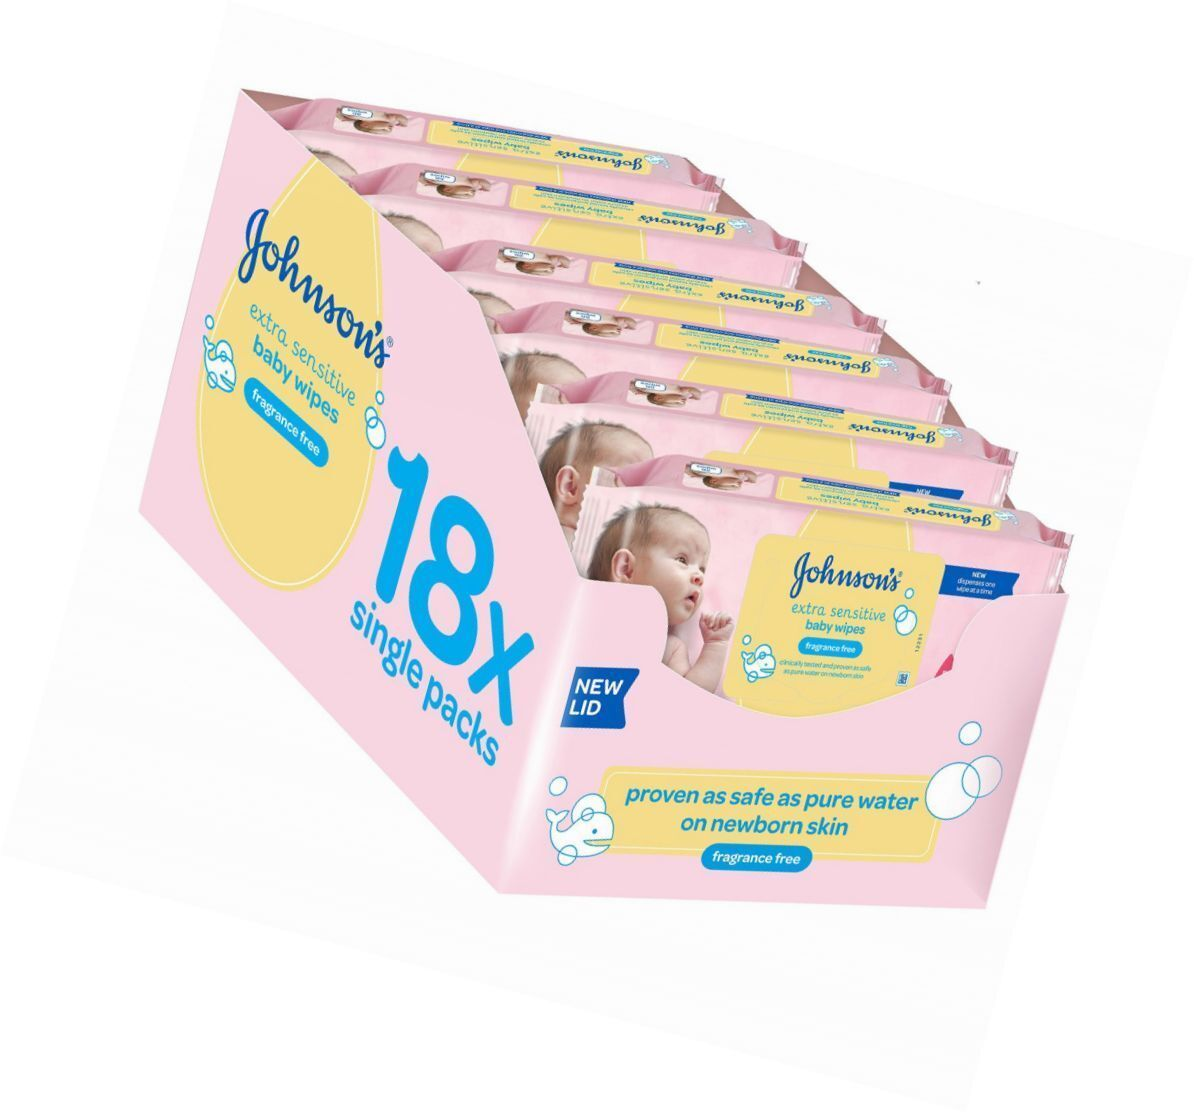 *BRAND NEW* Johnson/'s Baby Wipes 18 Pack 1008 Wipes